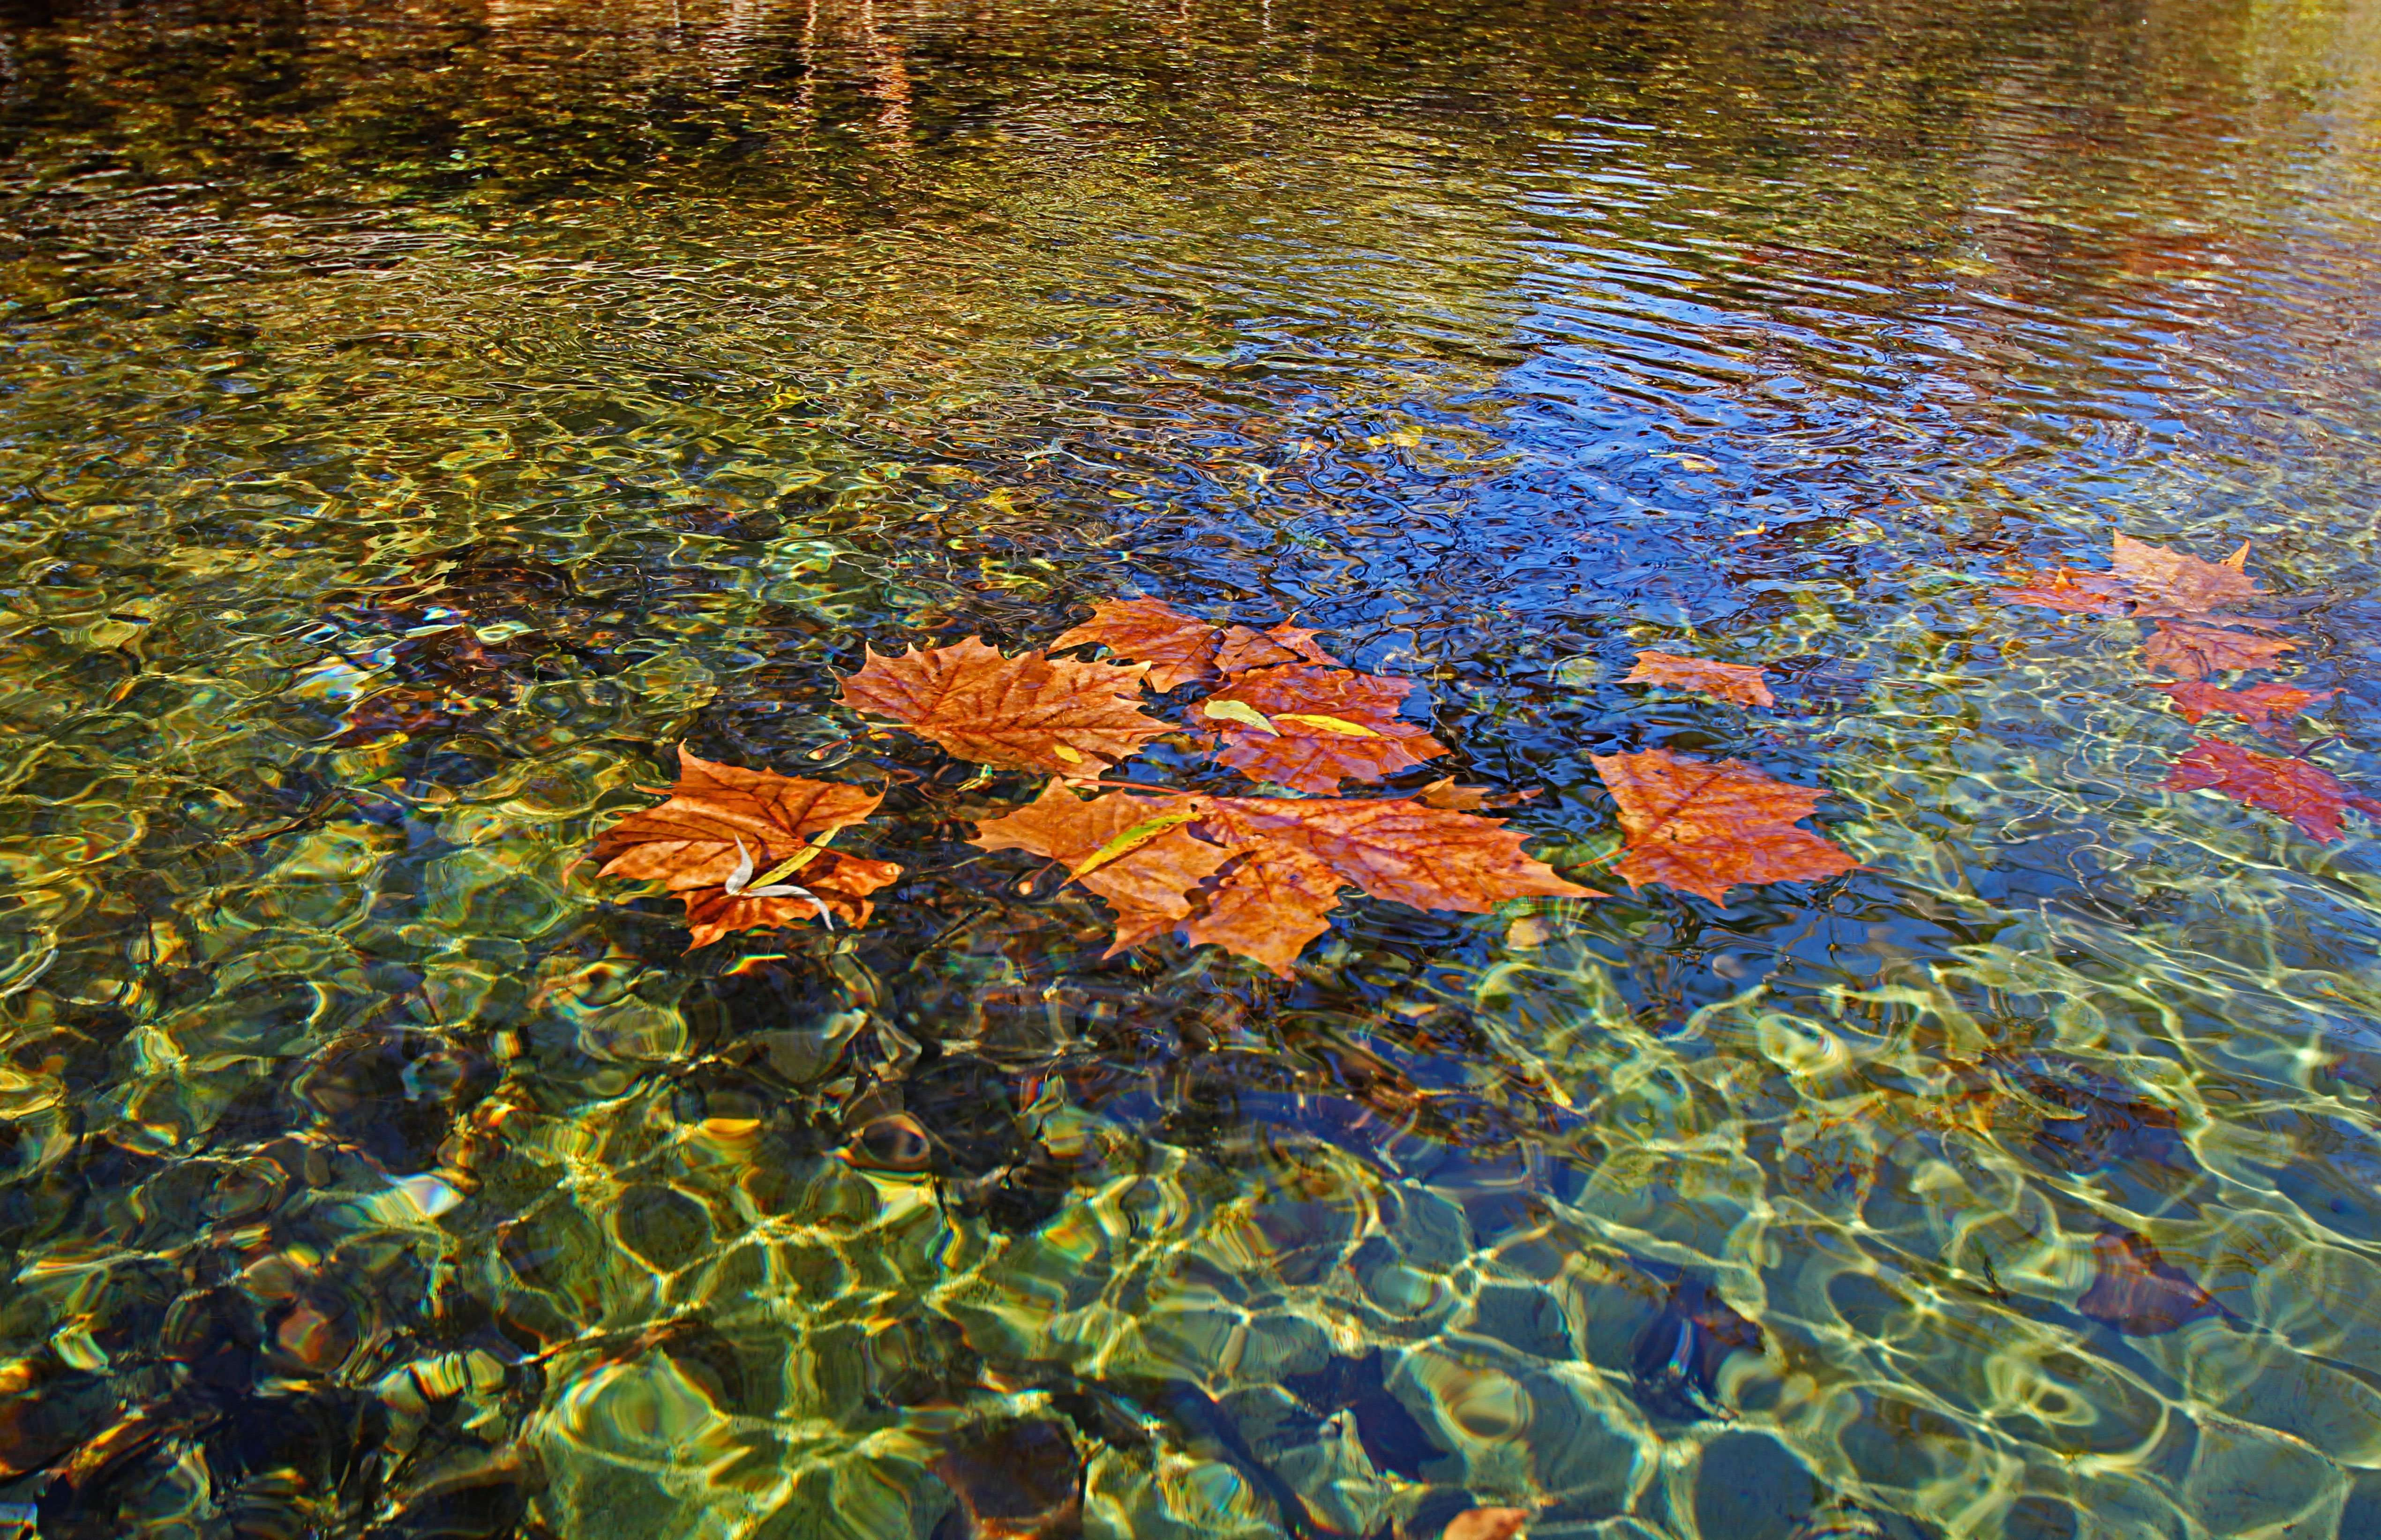 October's healthy streams are gorgeous in October - Leaves on Water shows Sycamore leaves floating on a clean Ozark stream